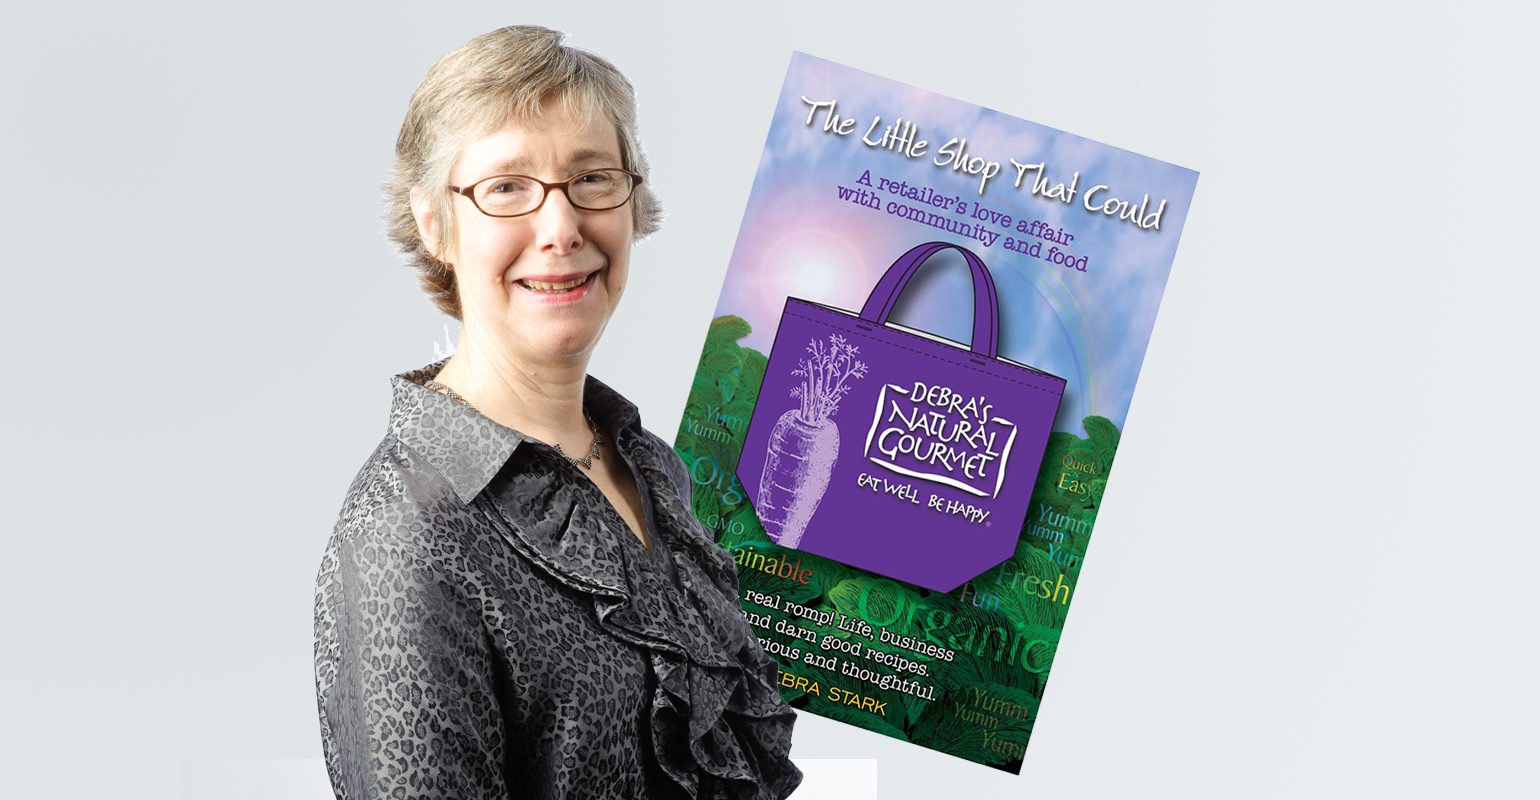 Debra Stark delights us with her new book, The Little Shop That Could.